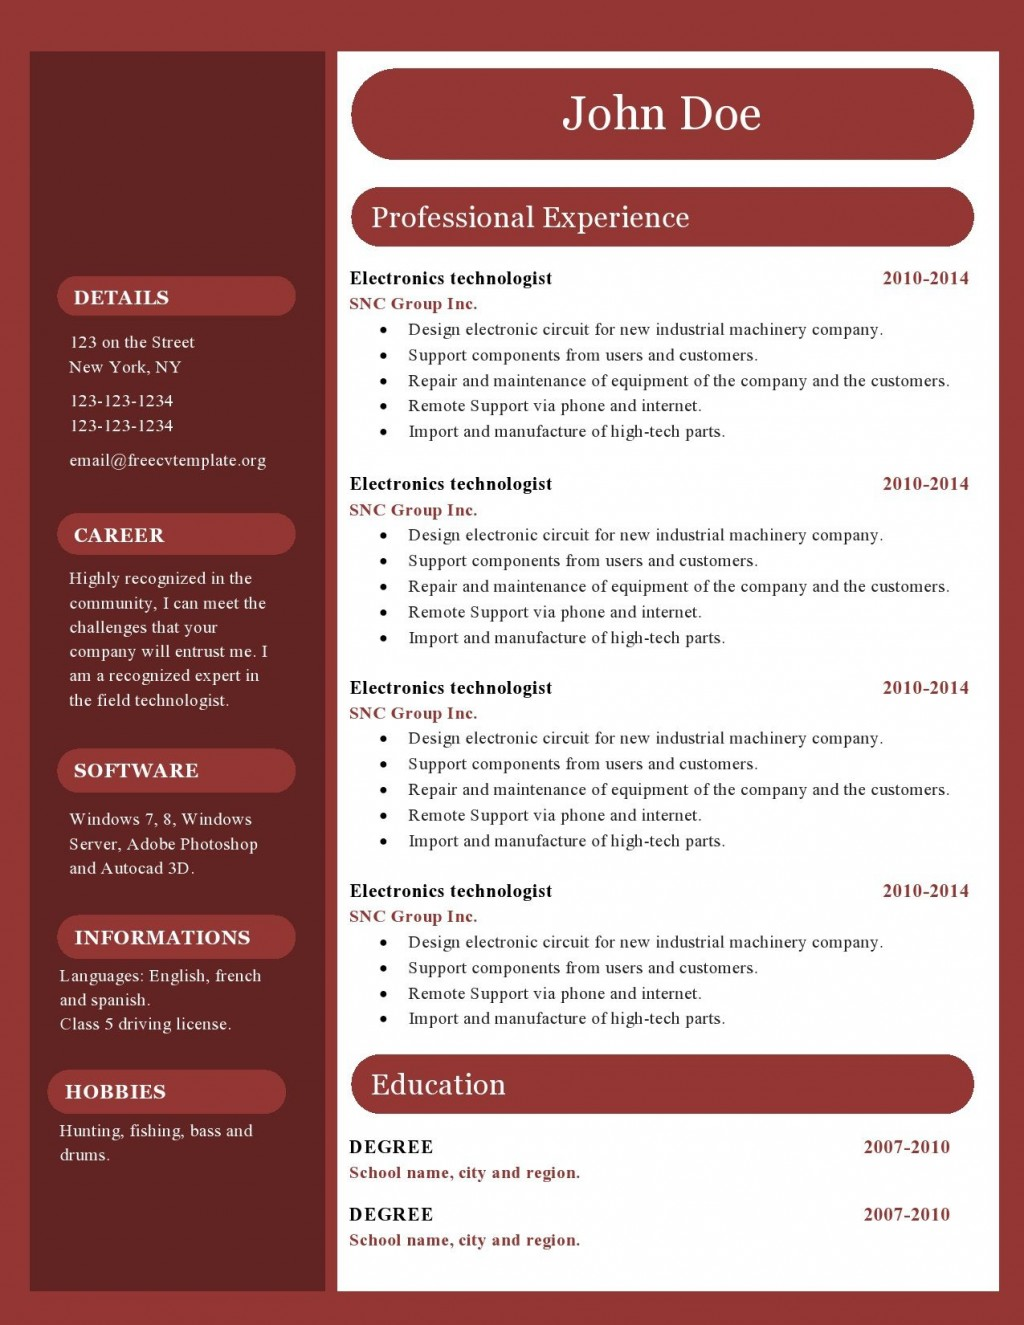 004 Unique Free Resume Template Microsoft Office Word 2007 Highest Clarity Large